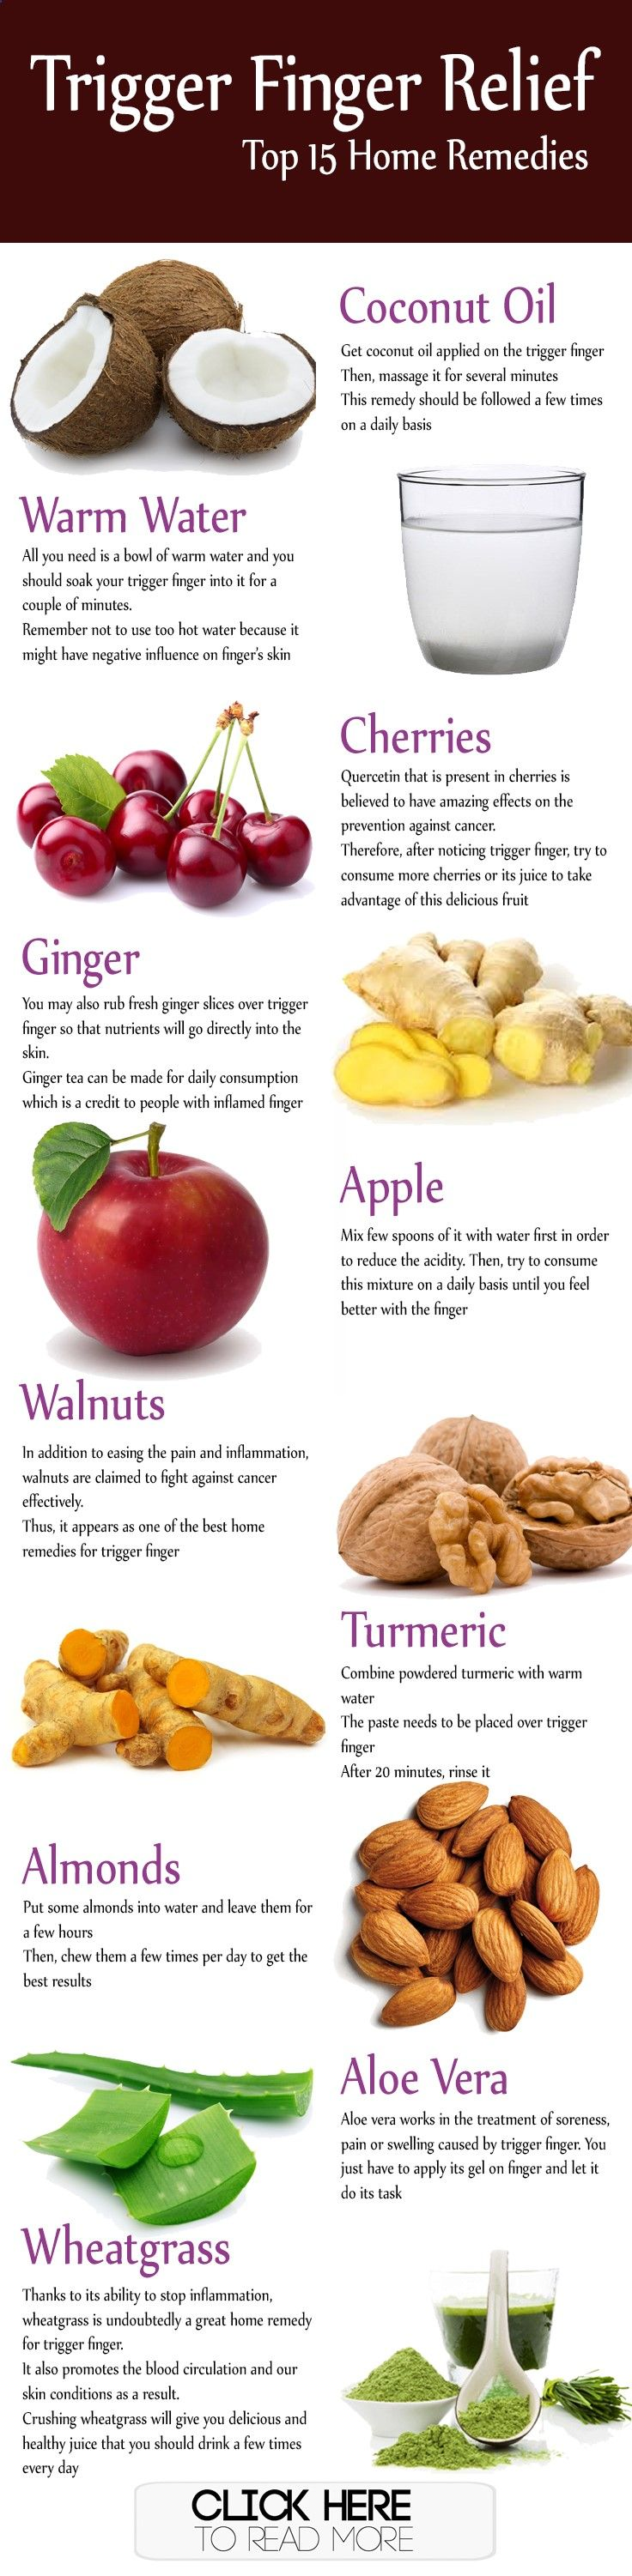 Natural Cures for Arthritis Hands  Top  Home Remedies for Trigger